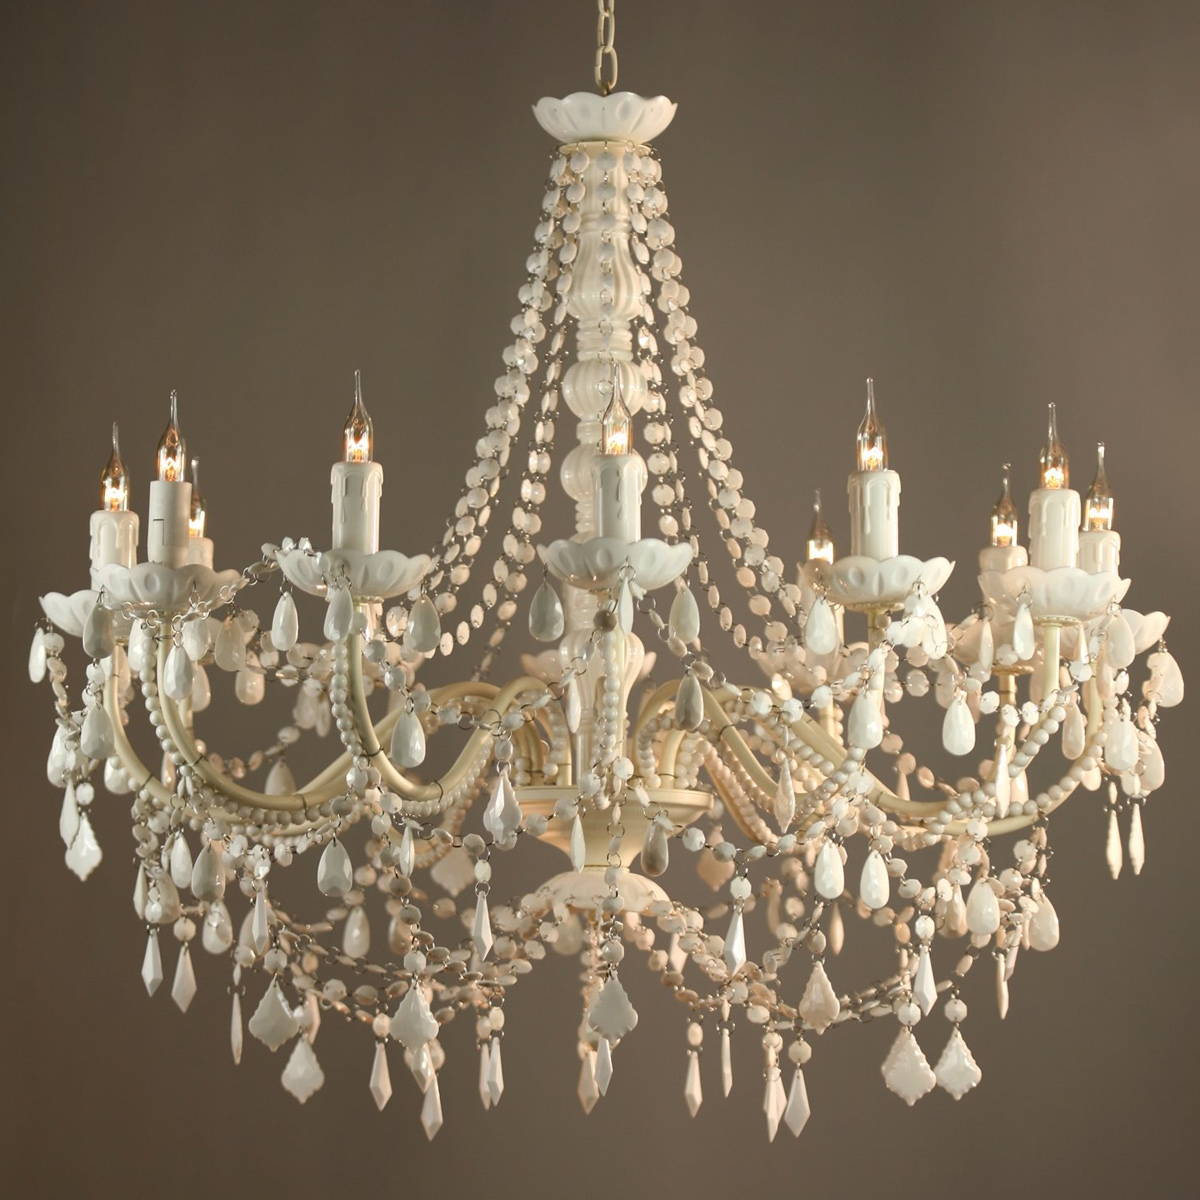 Antique White Chandelier With Vintage French Chandeliers (#3 of 12) - 12  Ideas - Antique White Chandeliers Antique Furniture